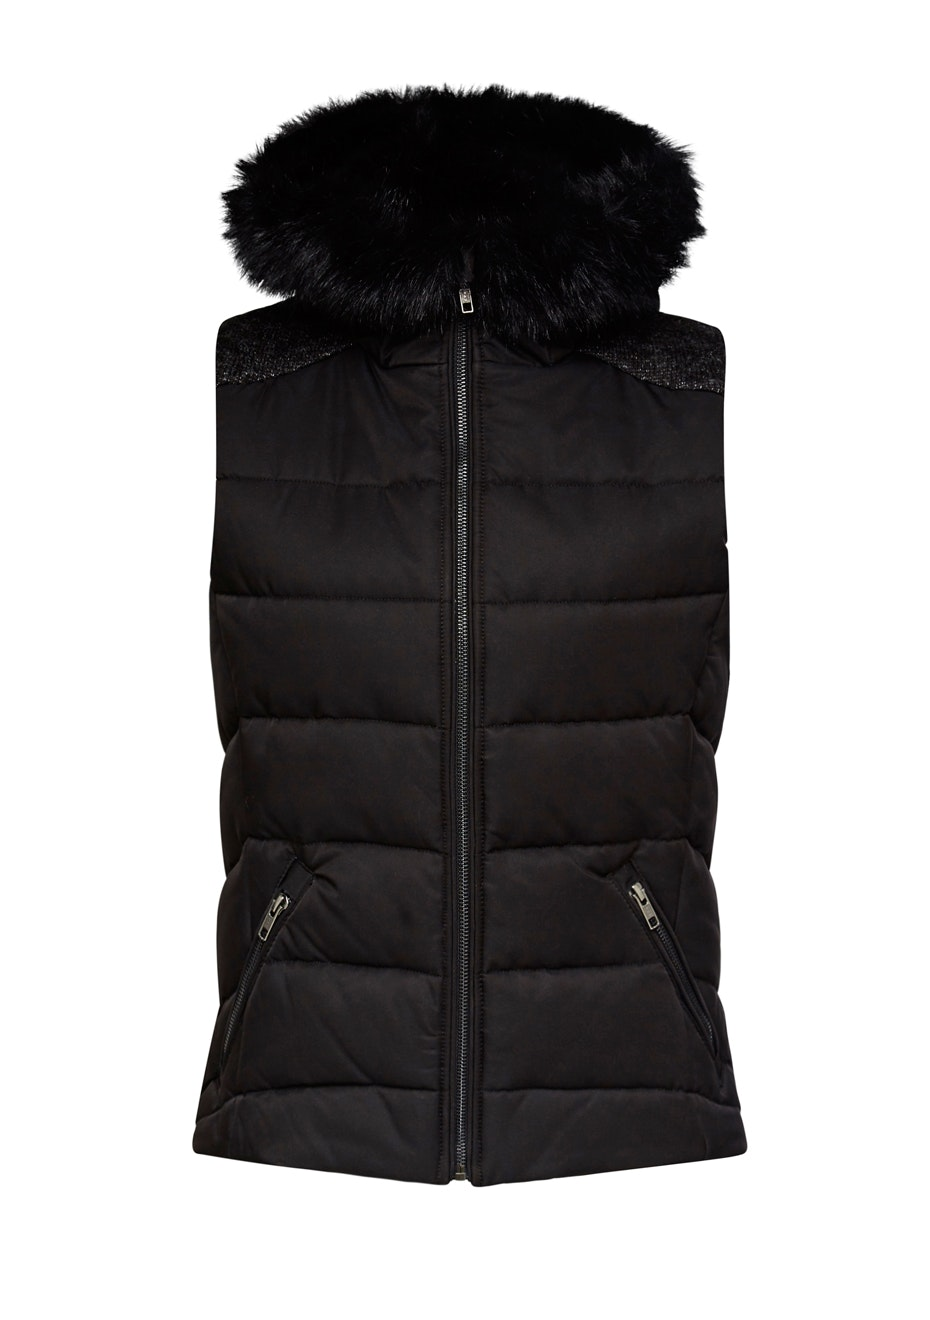 French Connection - Knit Back Fur Puffa Vest - Black